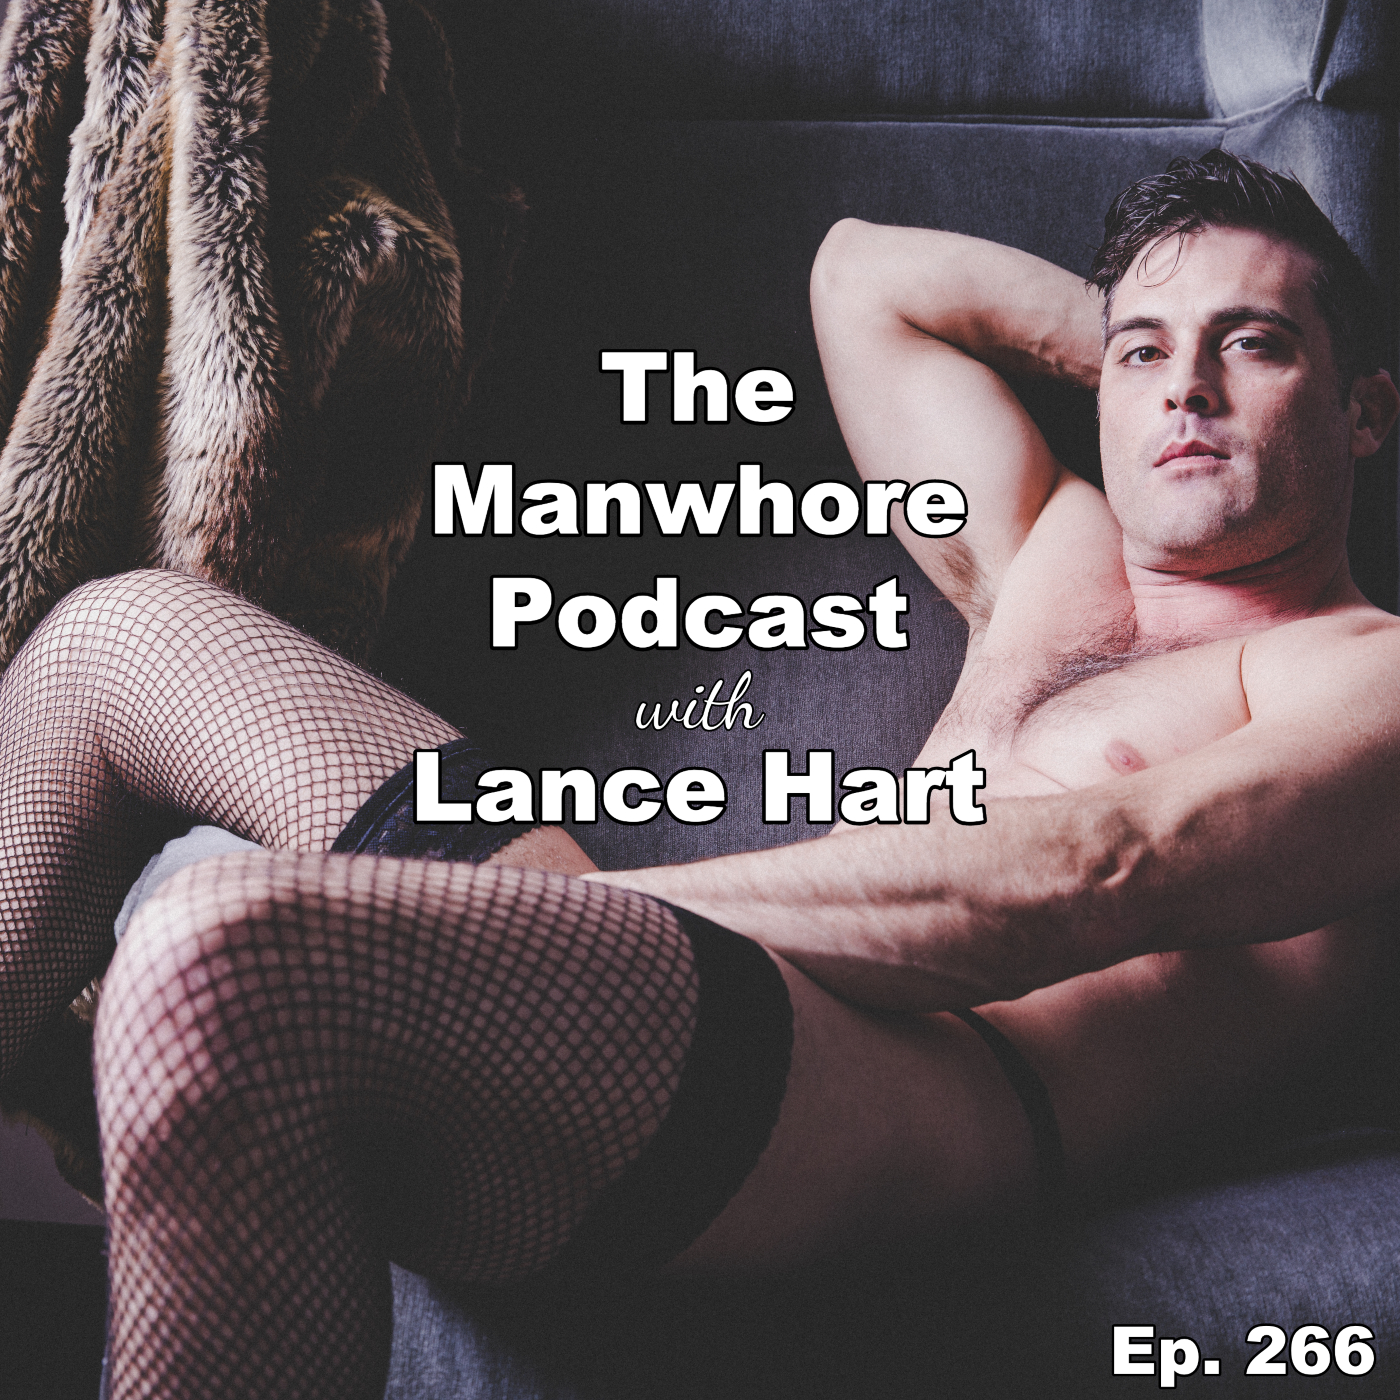 The Manwhore Podcast: A Sex-Positive Quest - Ep. 266: Porn Mob Conspiracy Theories with Lance Hart